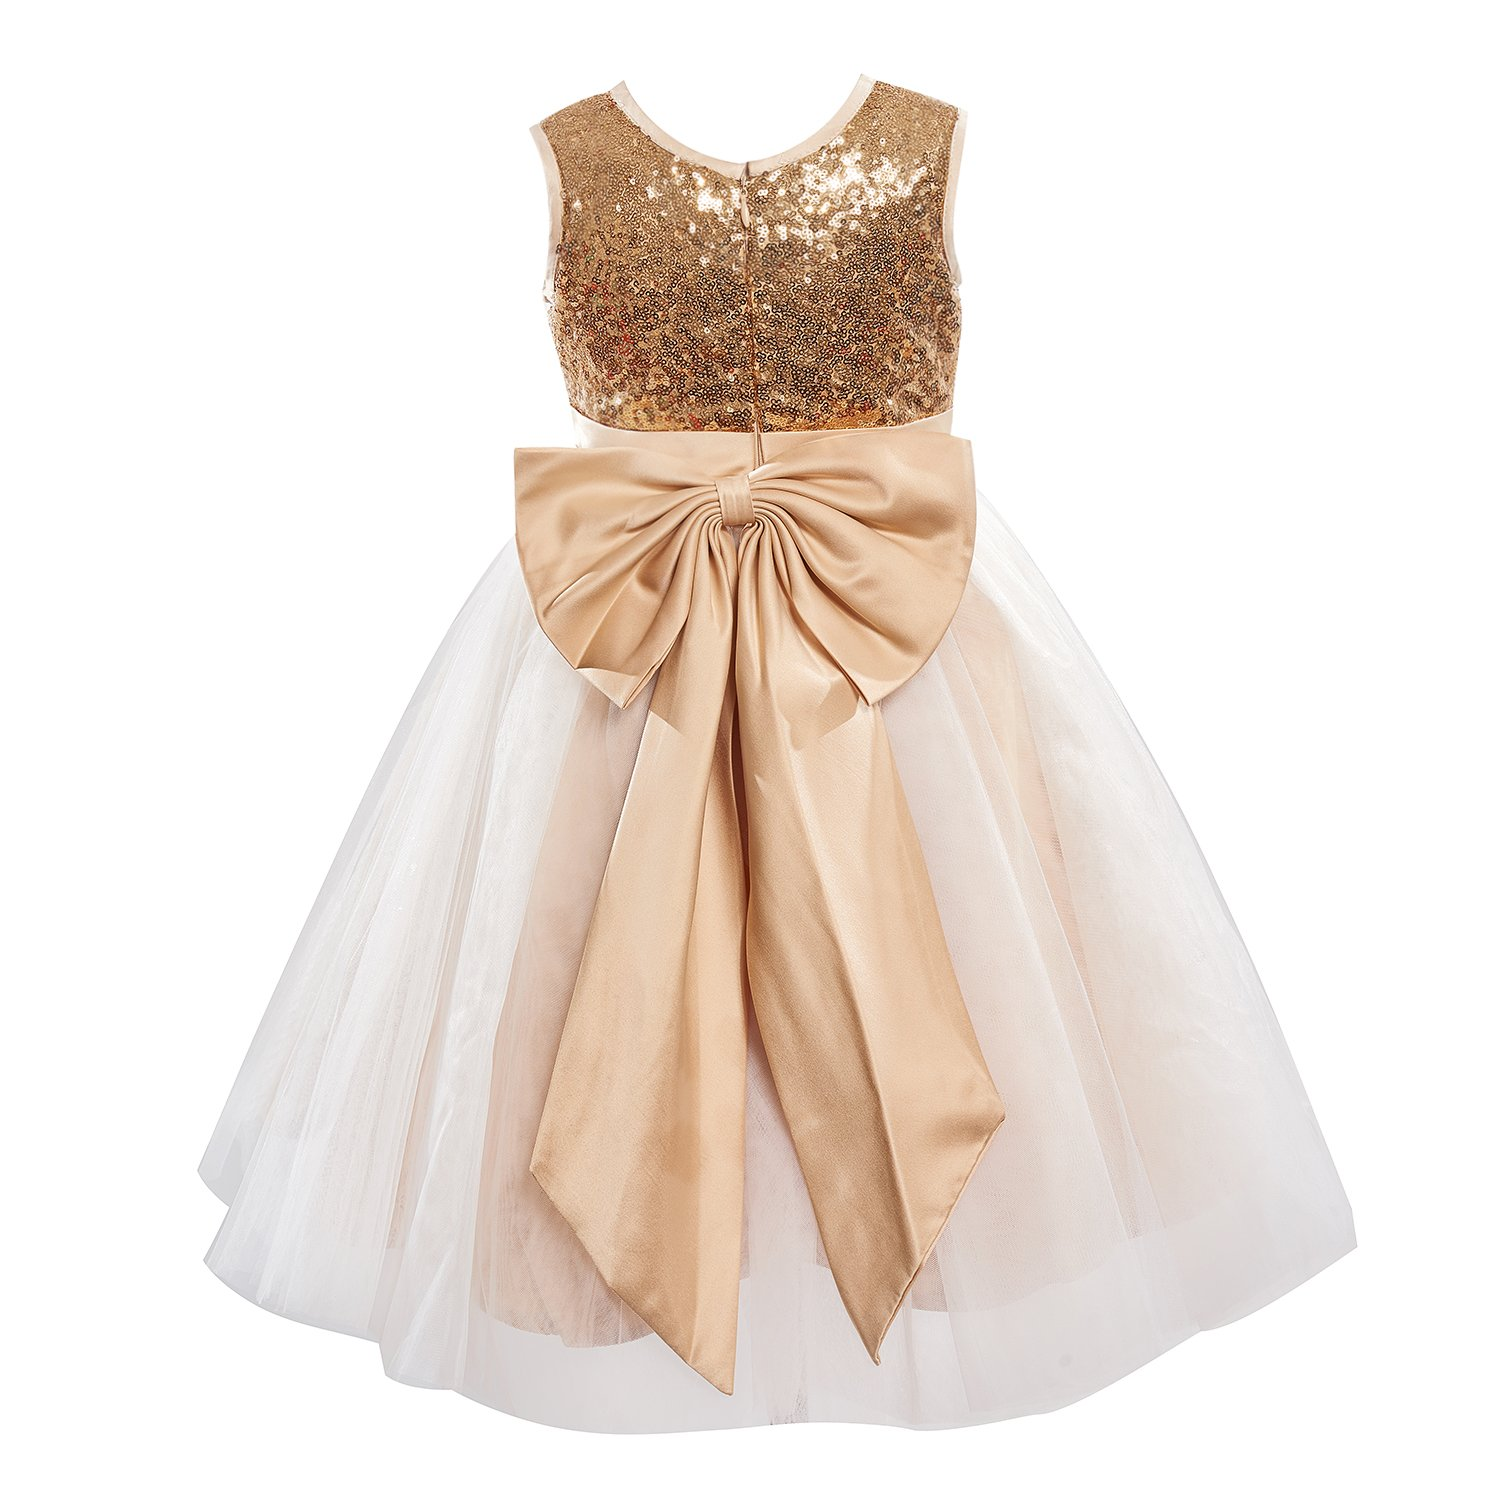 cddf0b88a31 Amazon.com  Dresslane Champagne Sequin Ivory Tulle Flower Girl Dress Kids  Dress Bow  Clothing